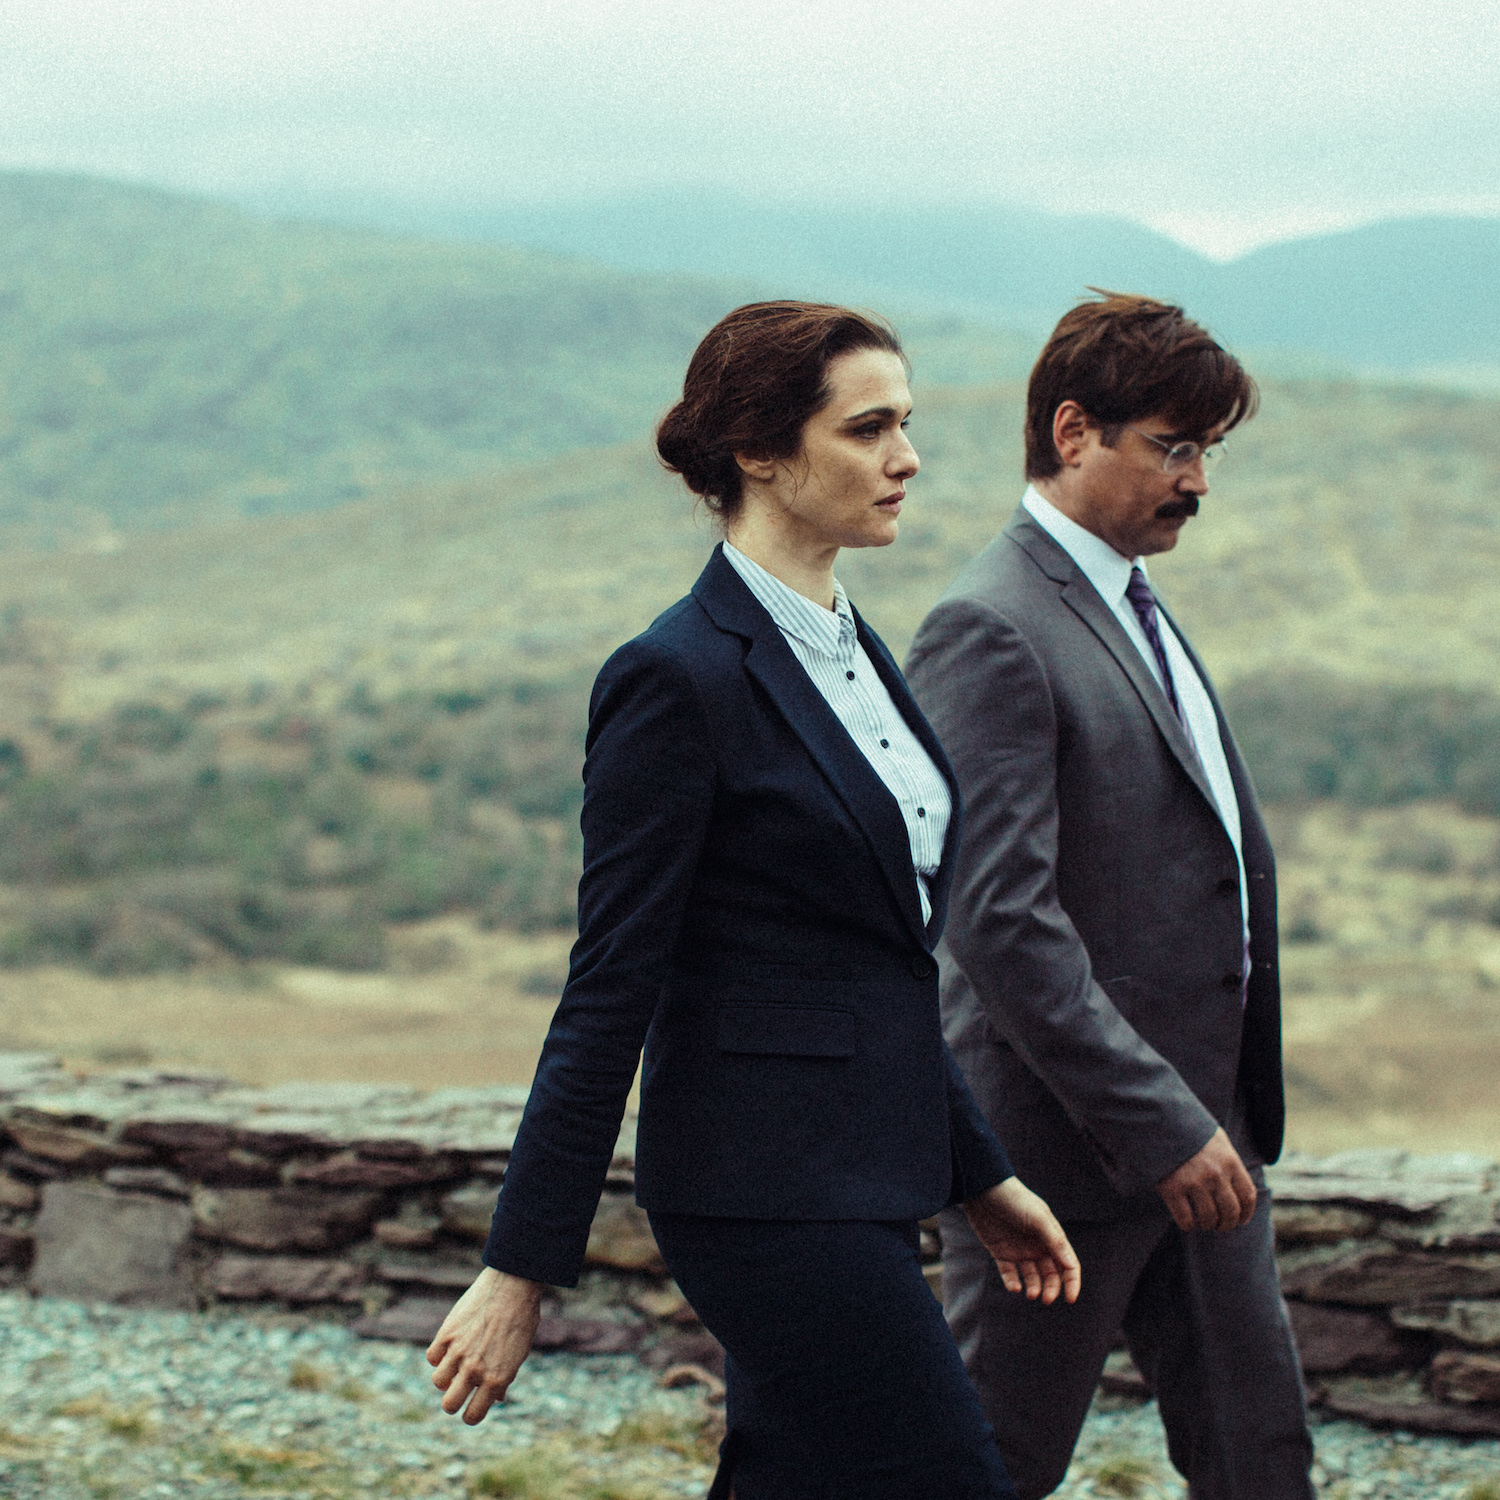 THE LOBSTER -